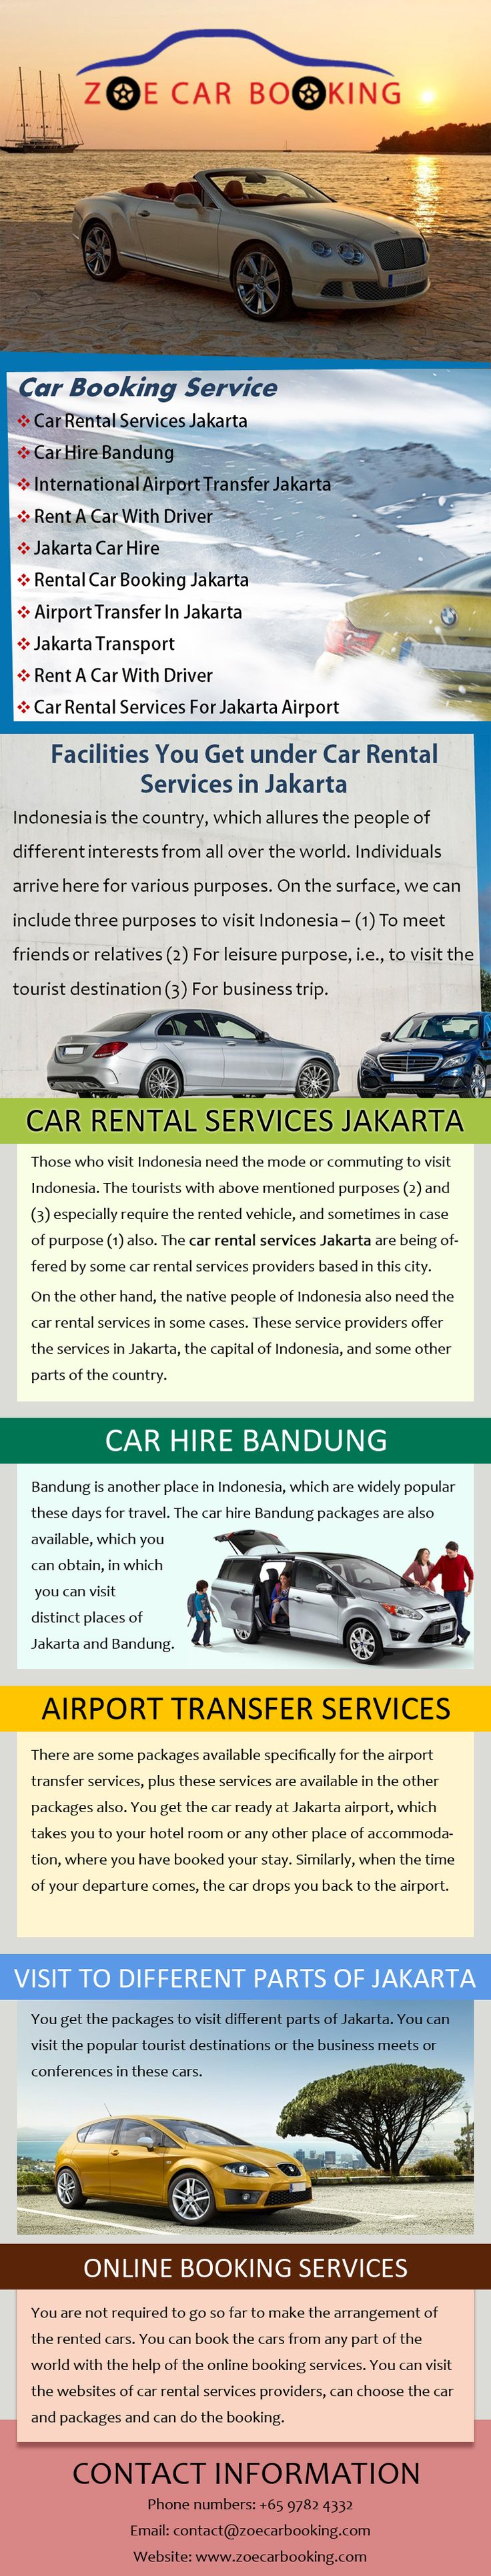 Find the best car rental services jakarta are zoe car booking which are provide services